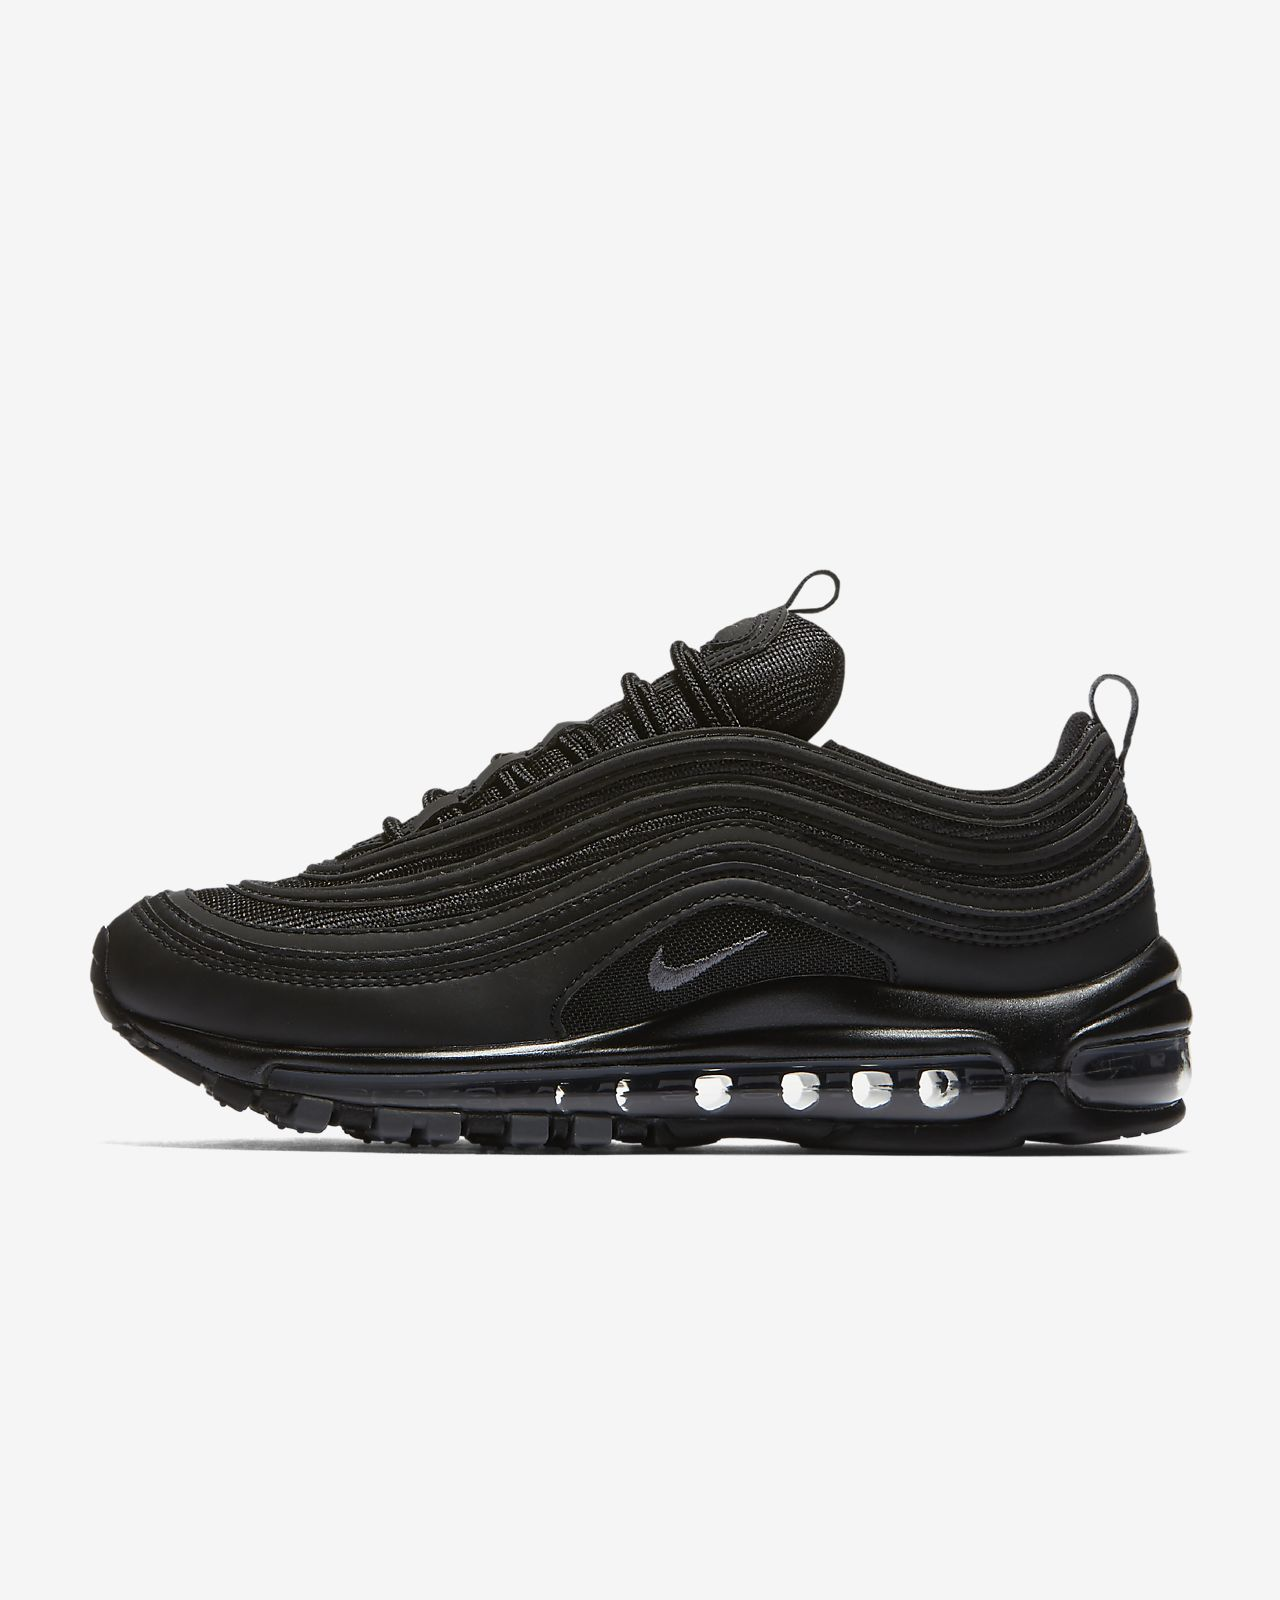 nike air max 97 womens grey and black